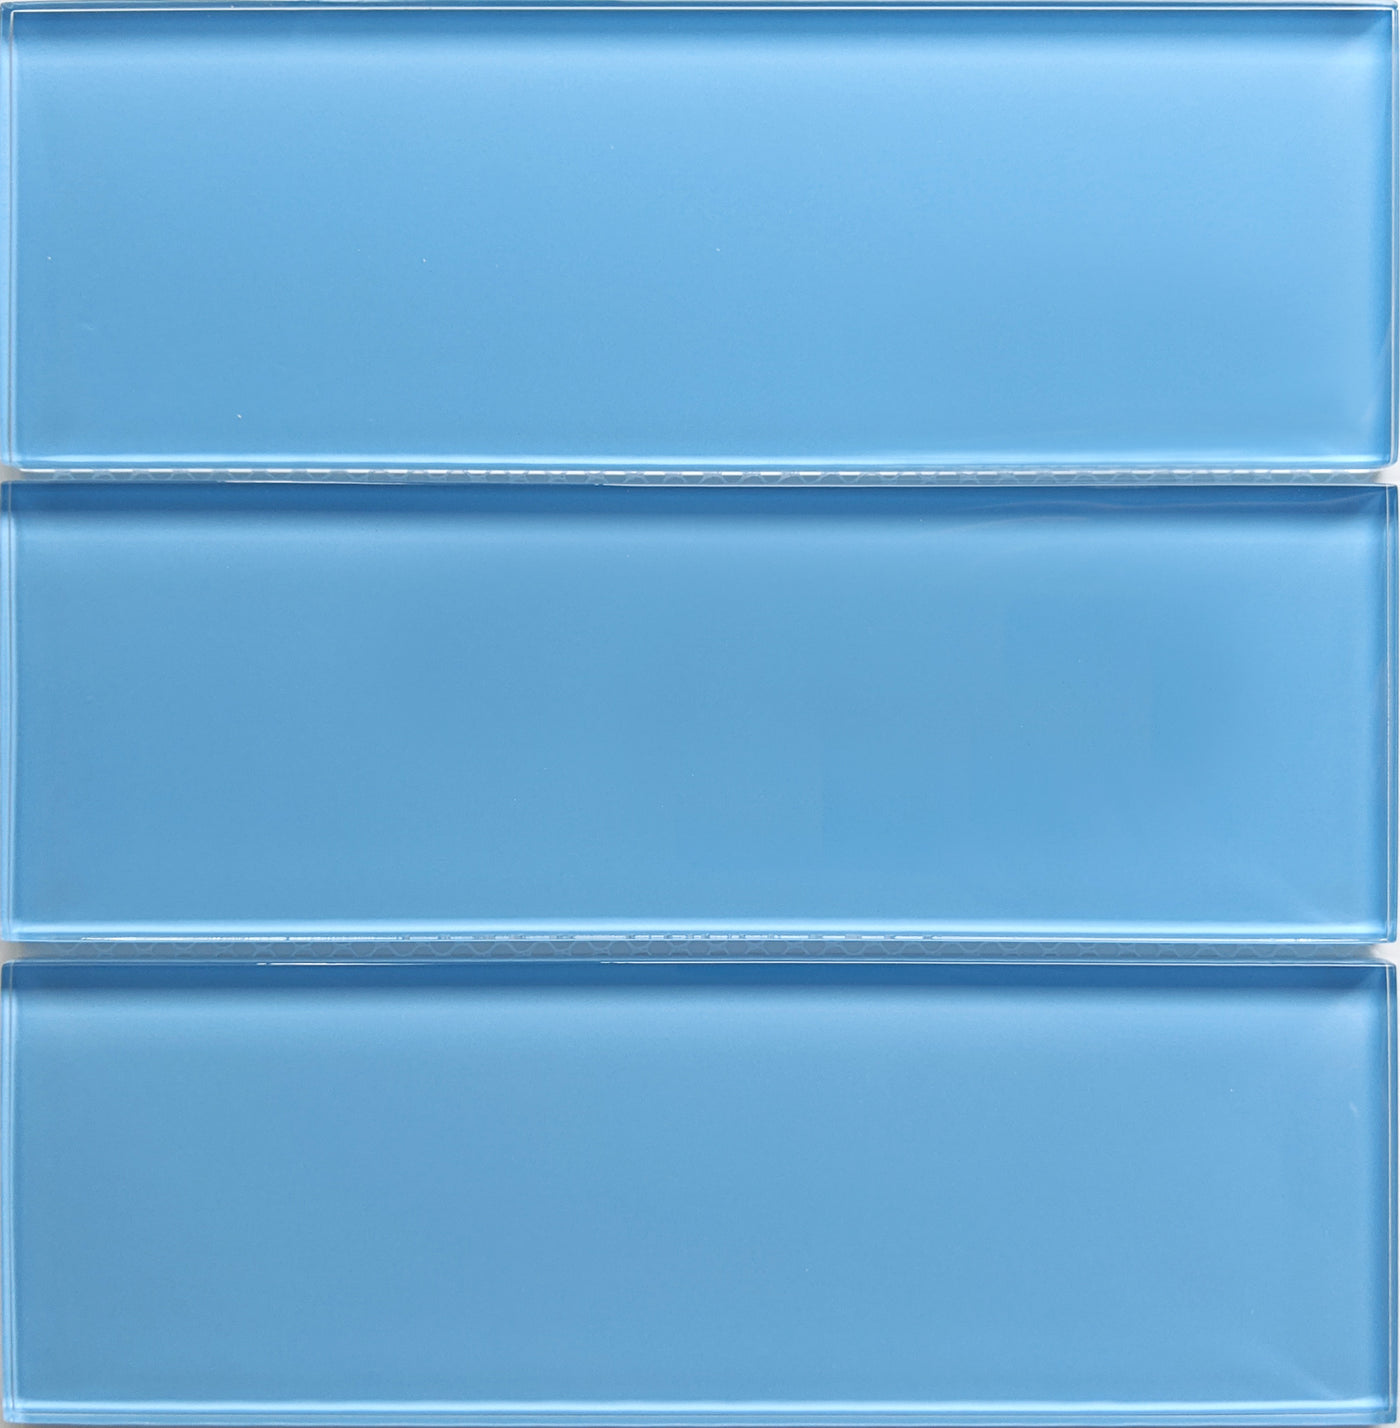 - Modwalls Lush Periwinkle Glass Subway Tile 3x9 Tile Blue